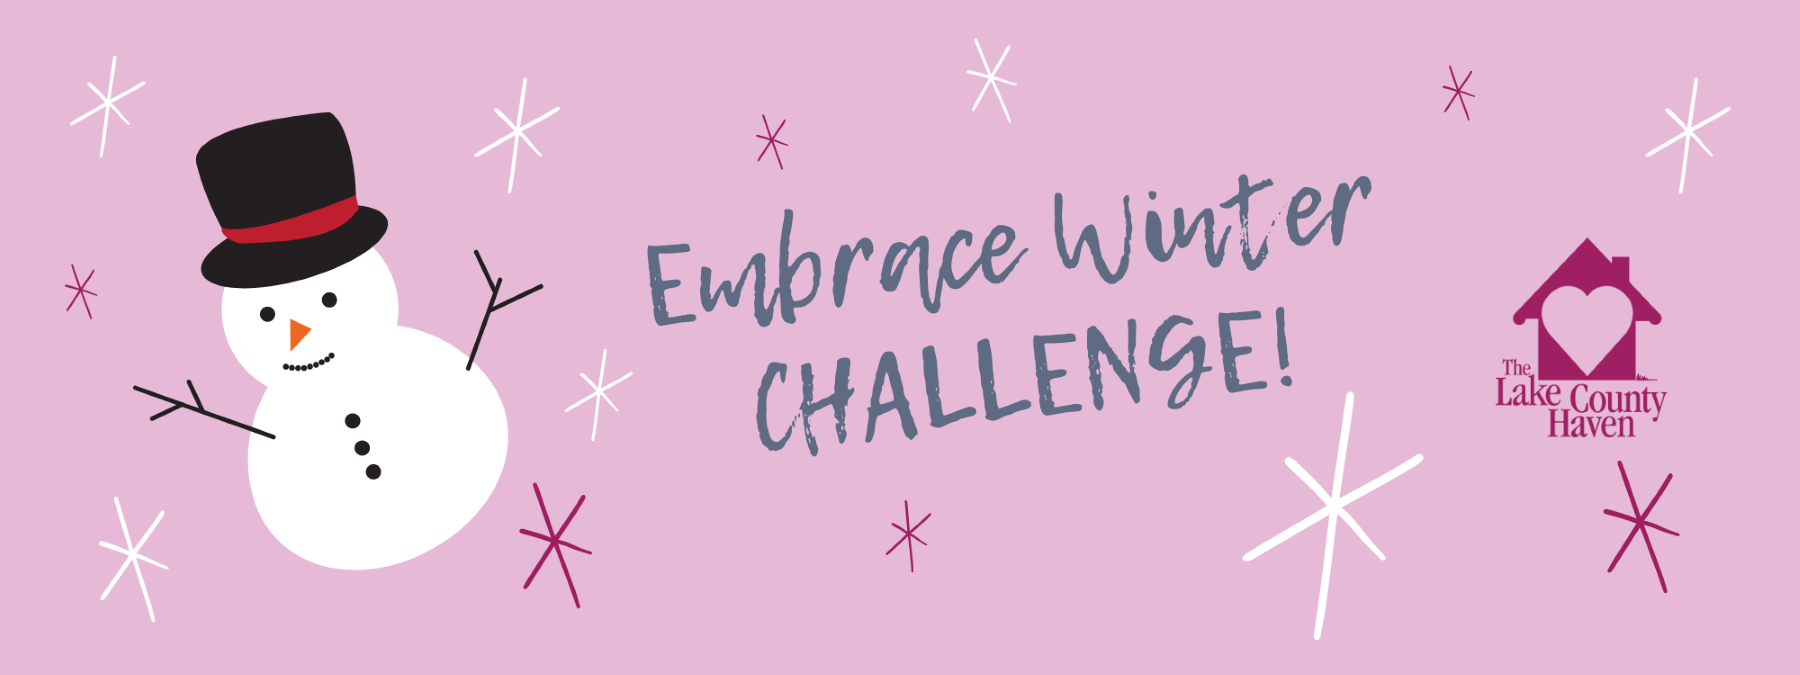 Embrace Winter Challenge